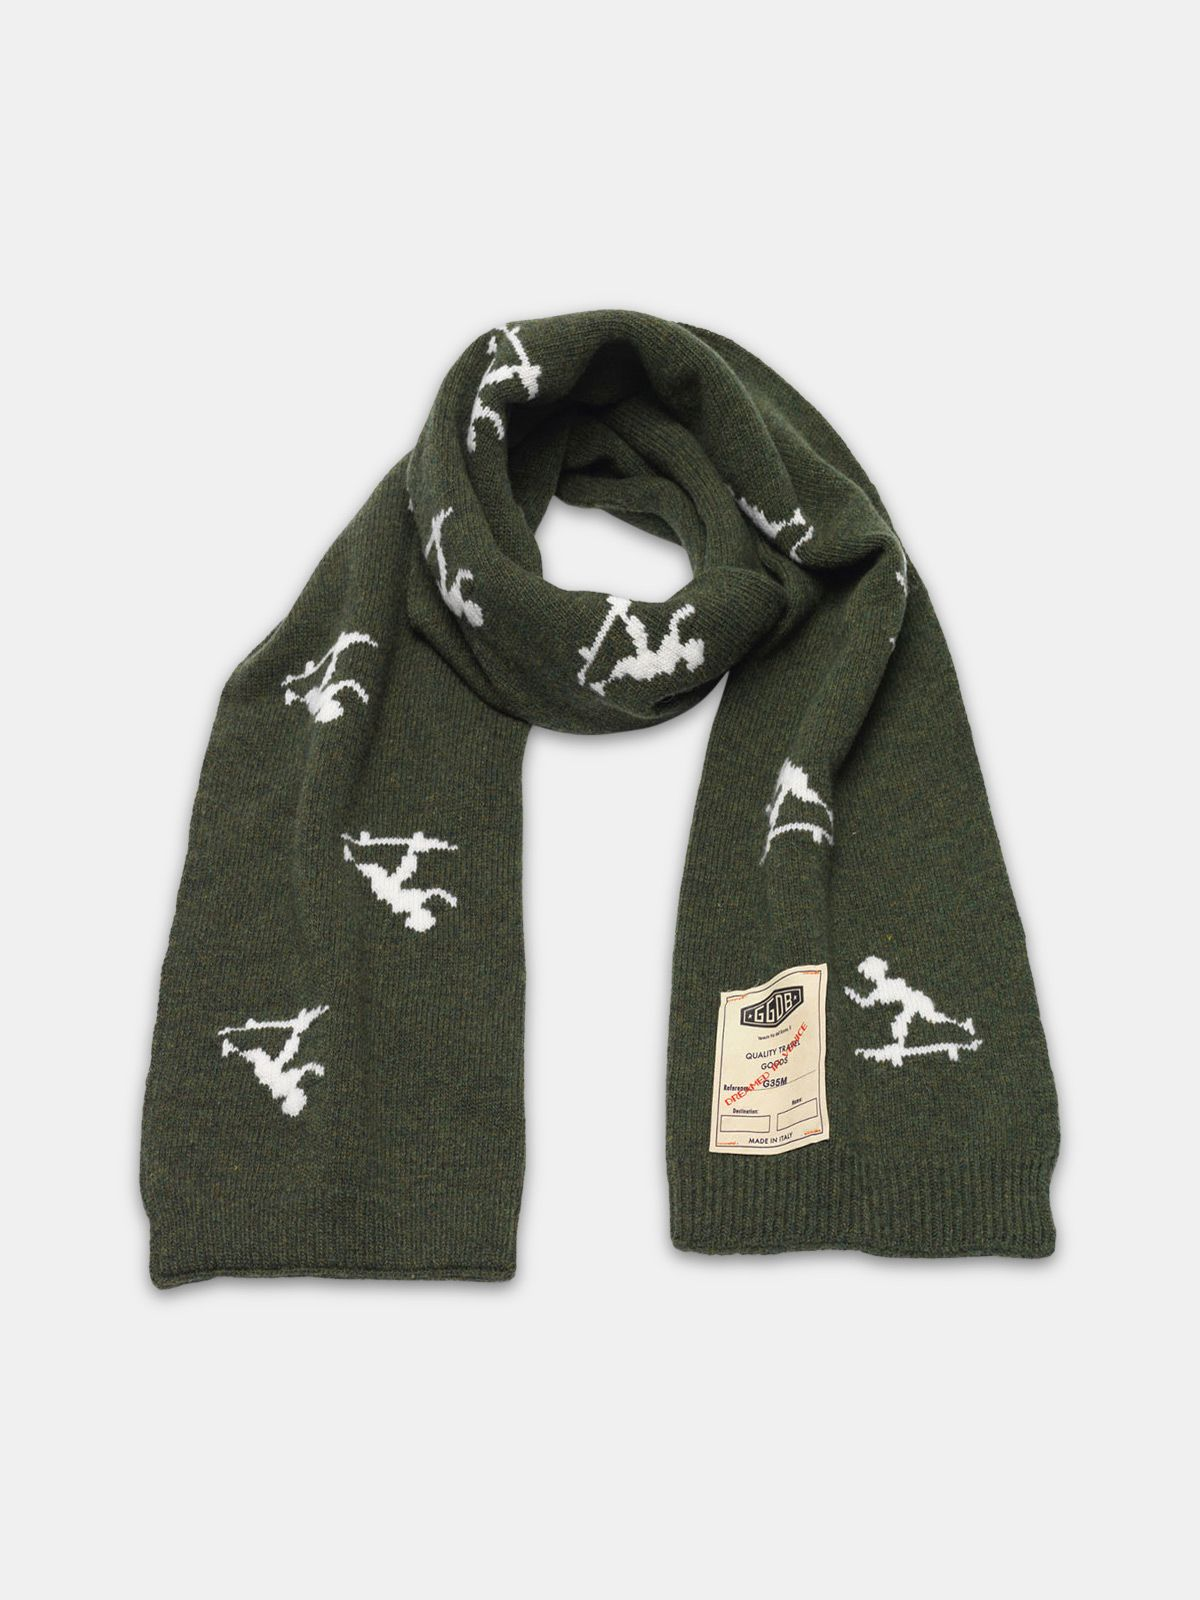 Golden Goose - Michio scarf made of wool with vintage logo label in